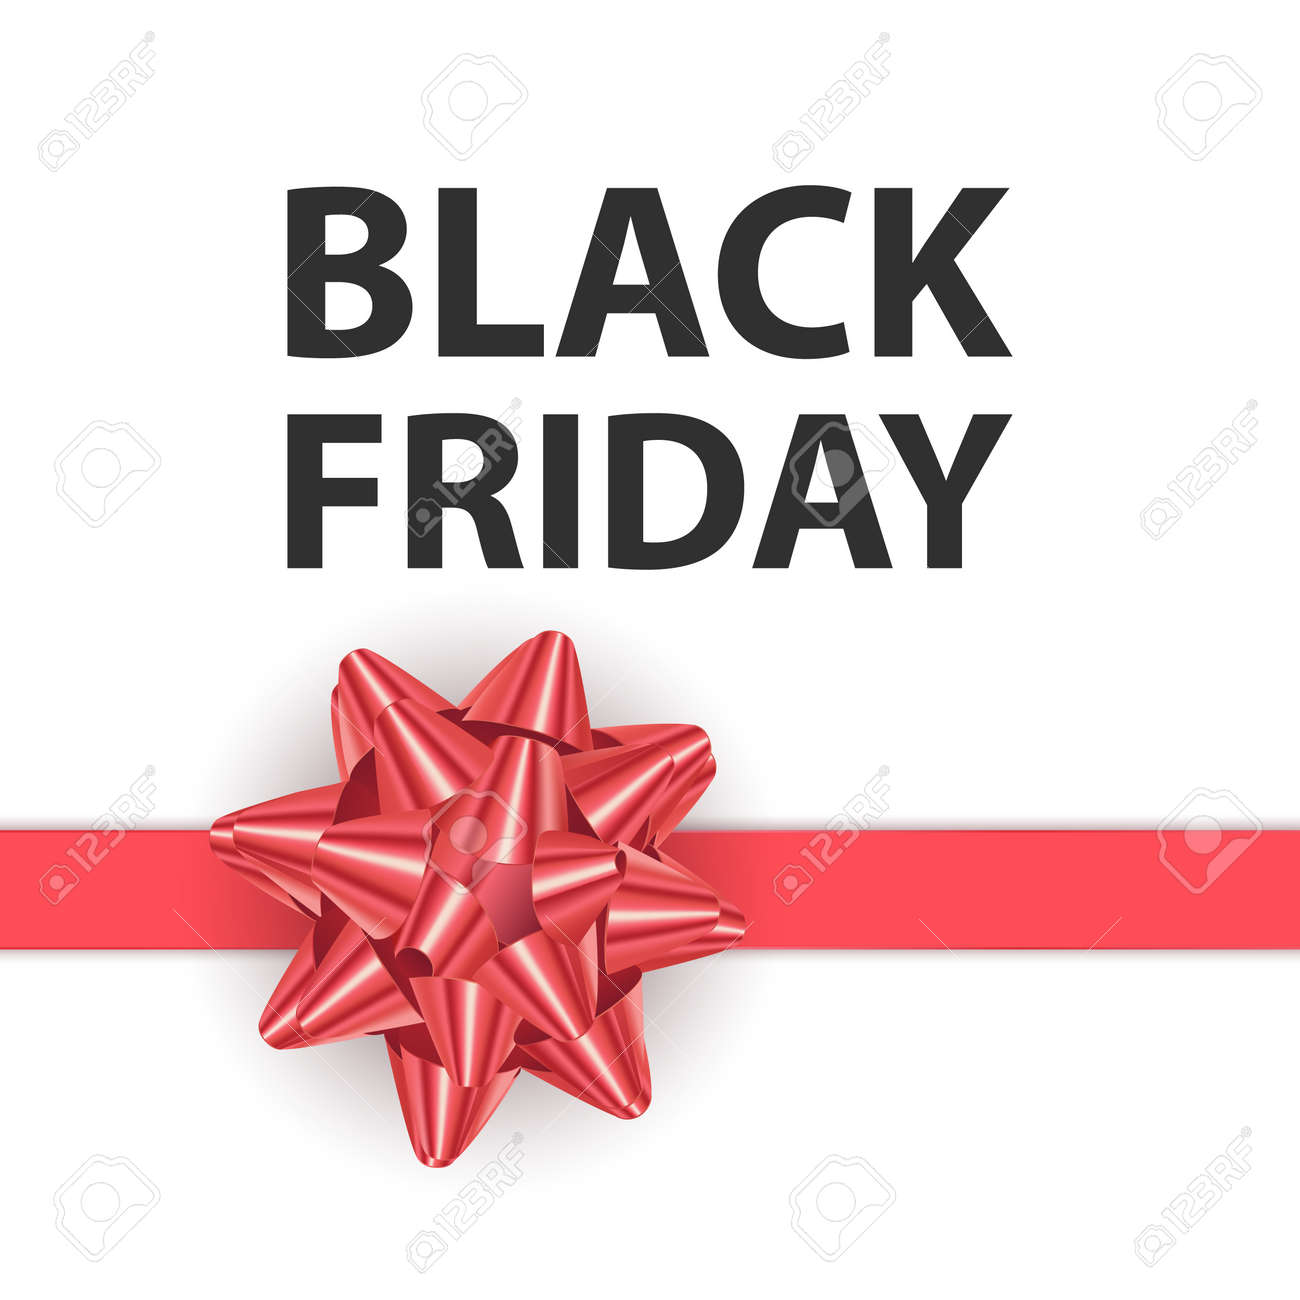 Black friday greeting card with a big Red bow, a template for your design, a holiday card, Vector format - 173922600